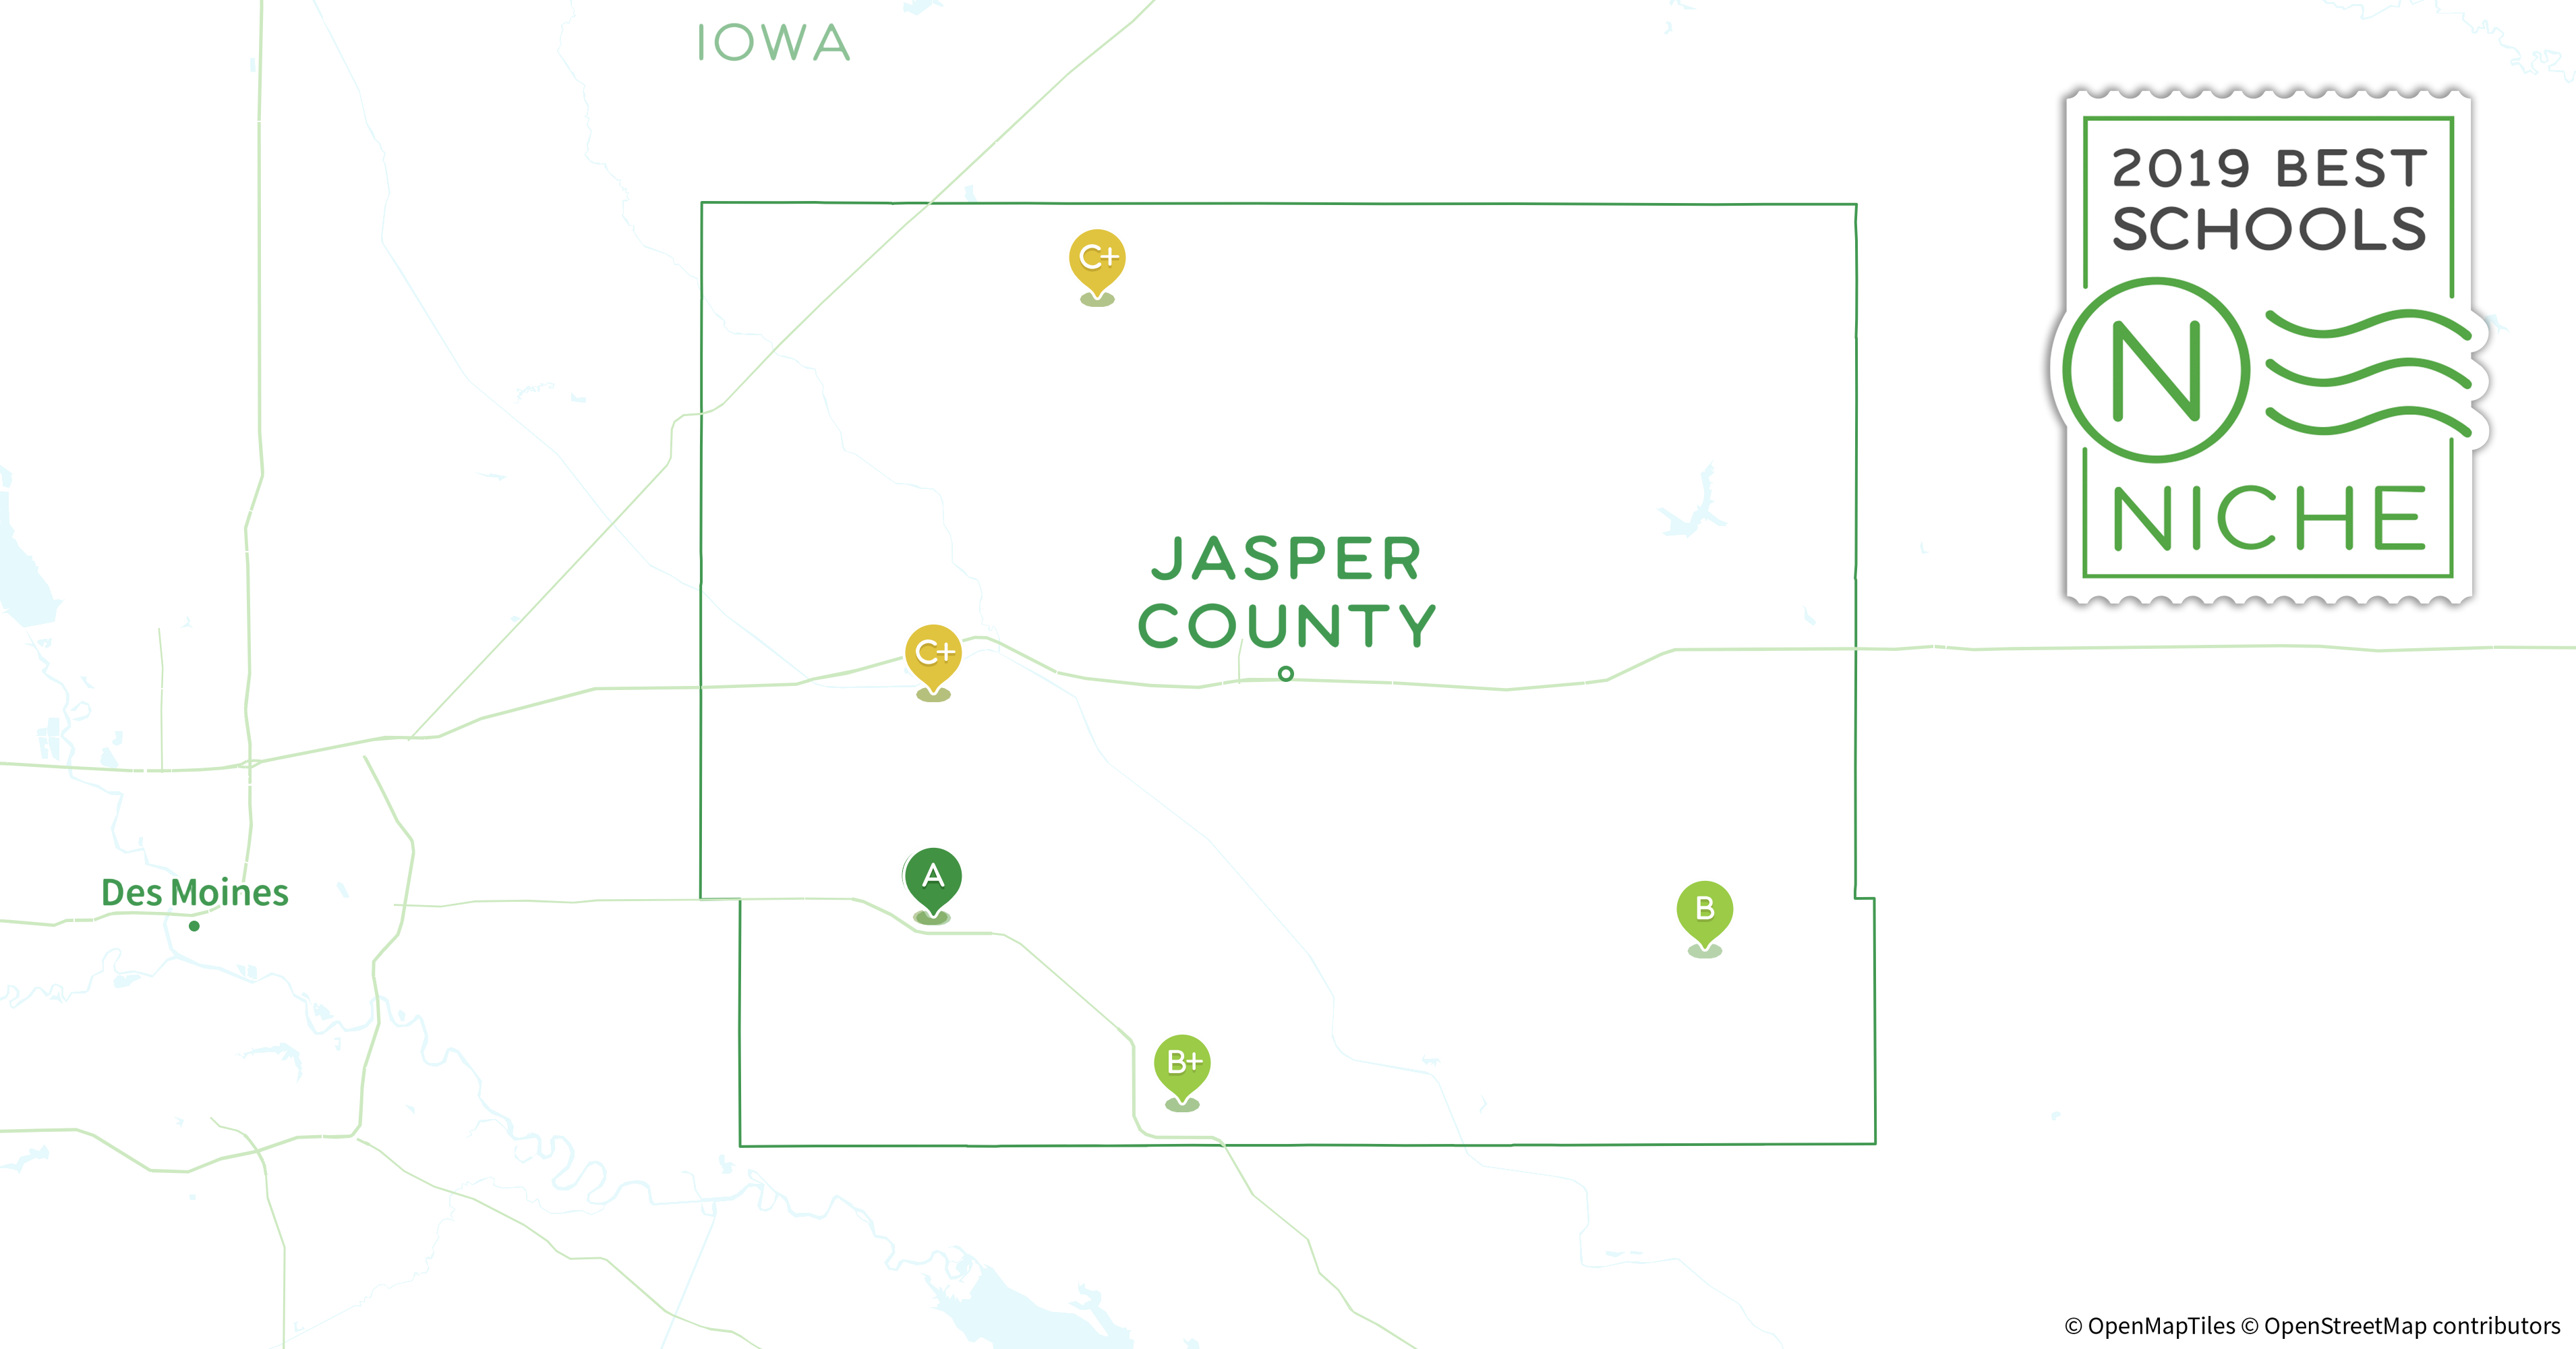 Jasper County Iowa Map.School Districts In Jasper County Ia Niche